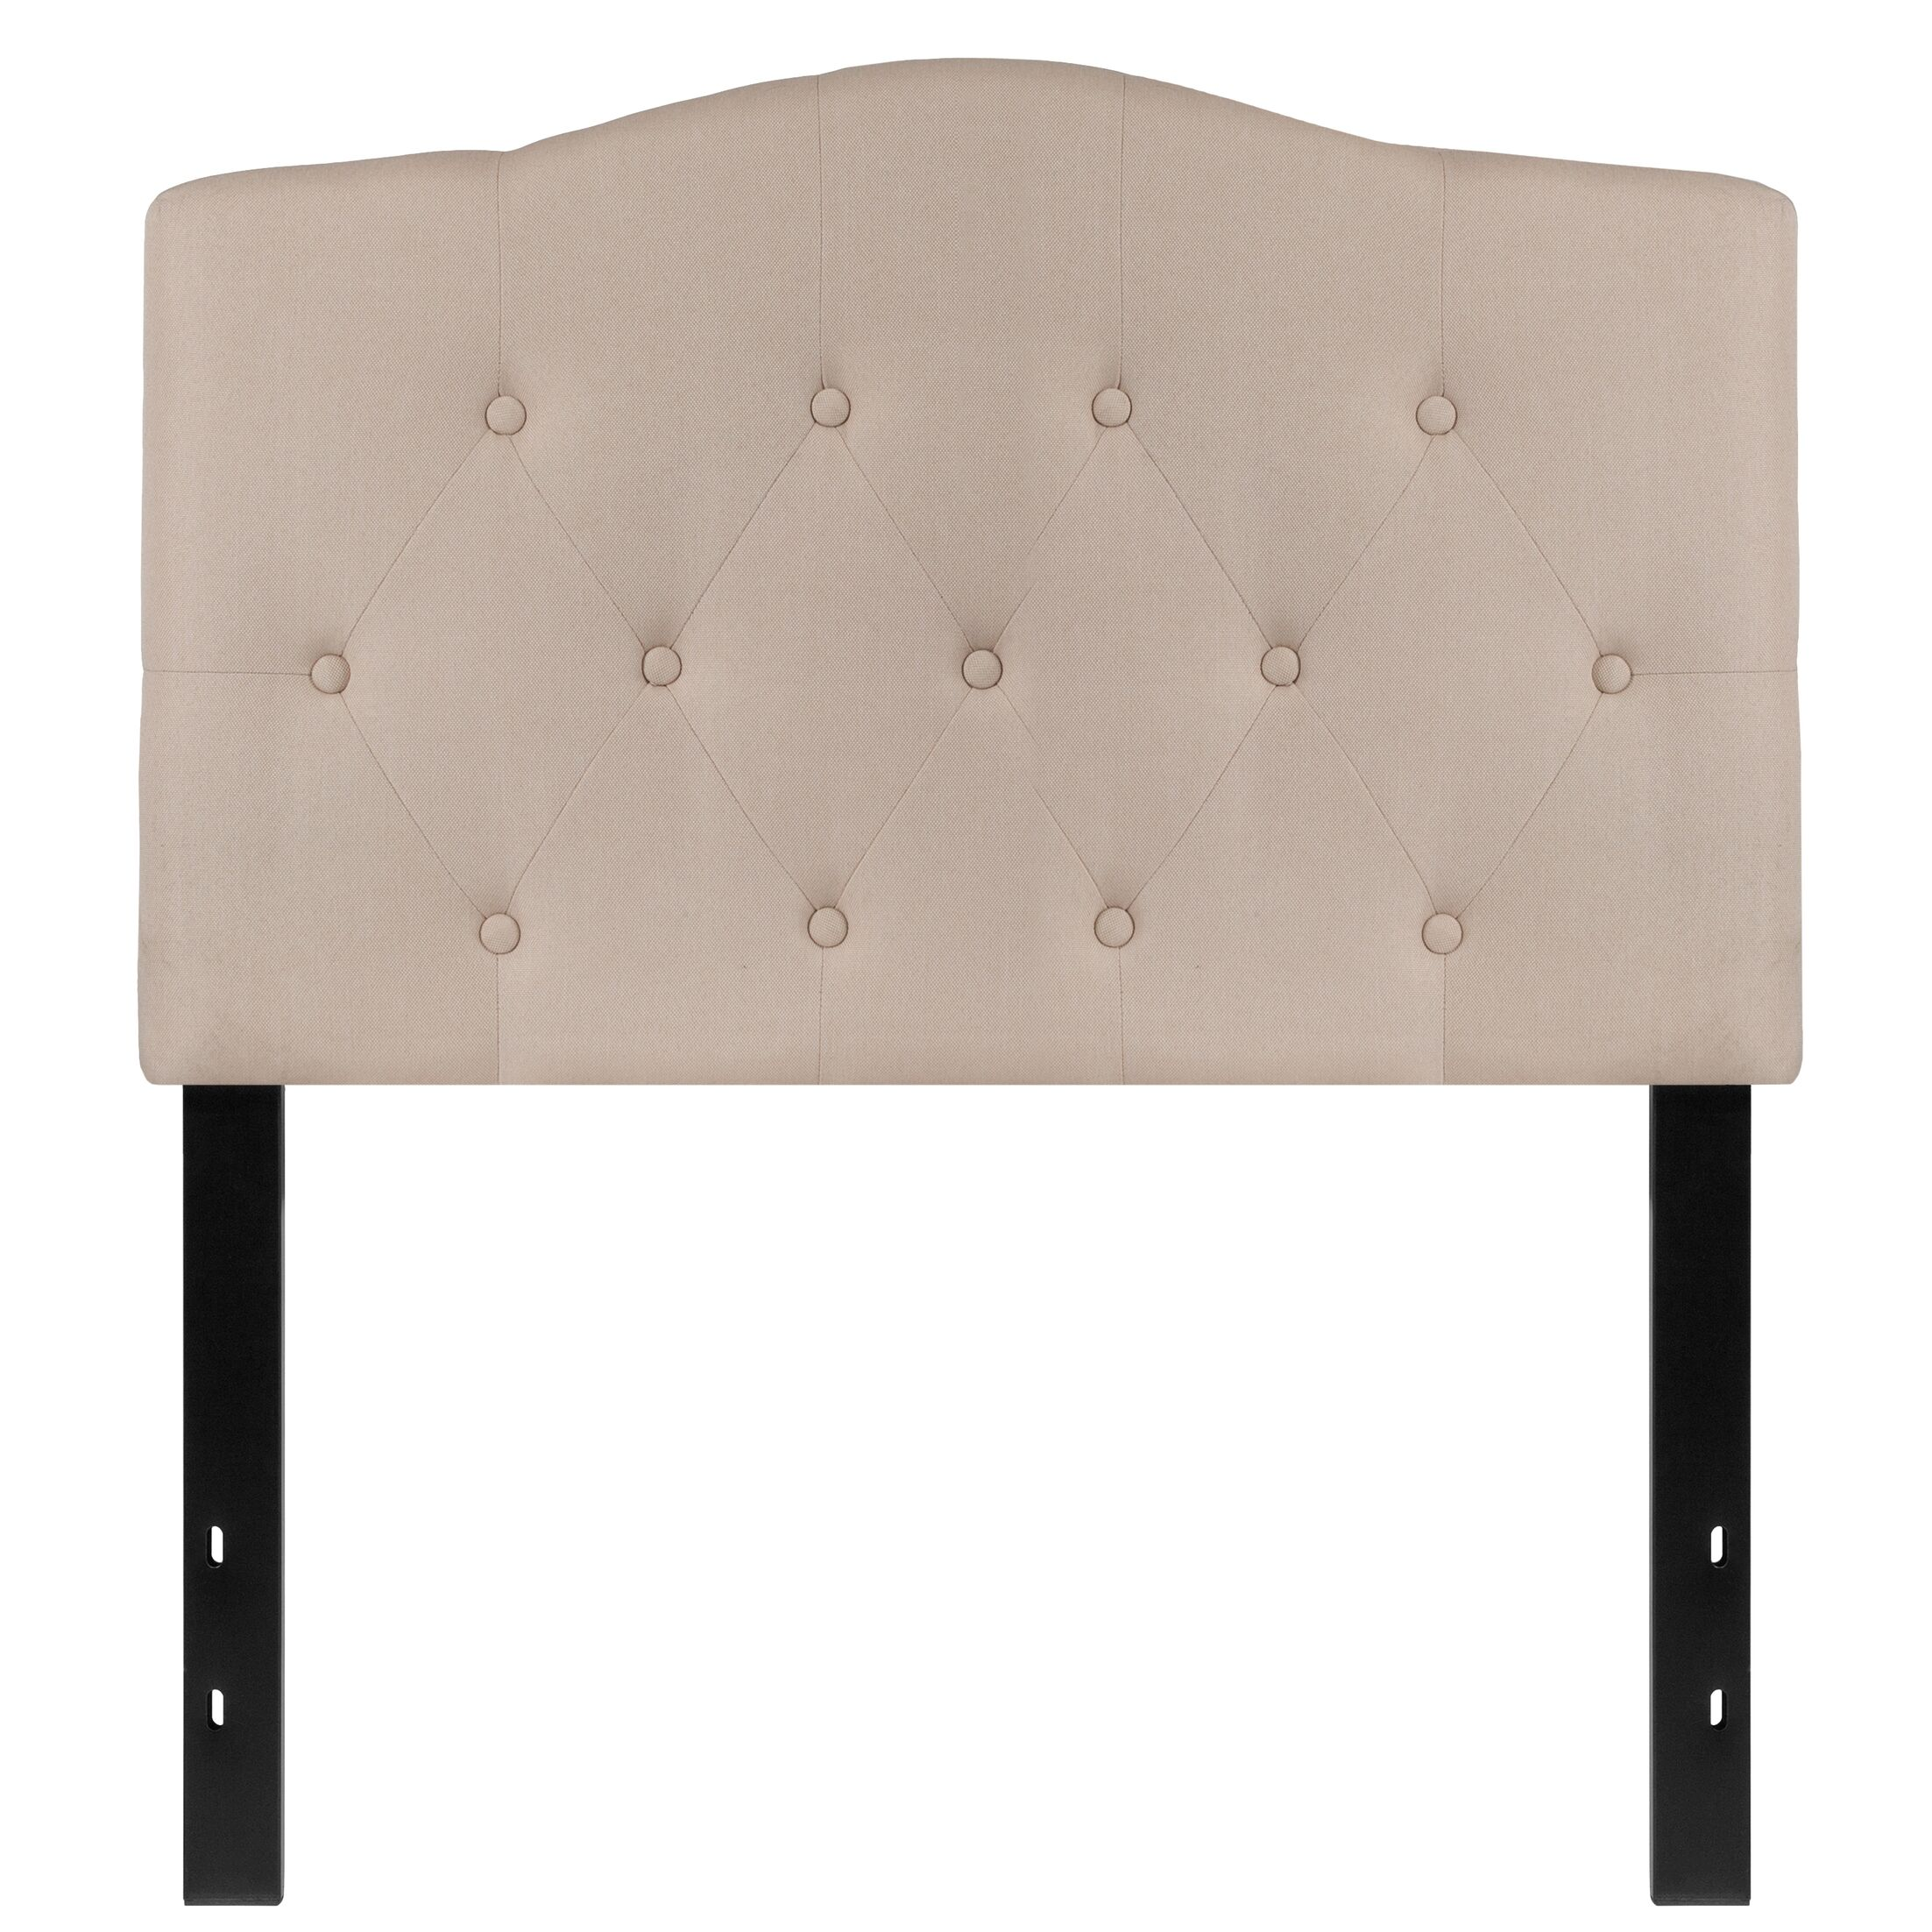 Fitz Cambridge Tufted Upholstered Panel Headboard Upholstery: Beige, Size: Queen